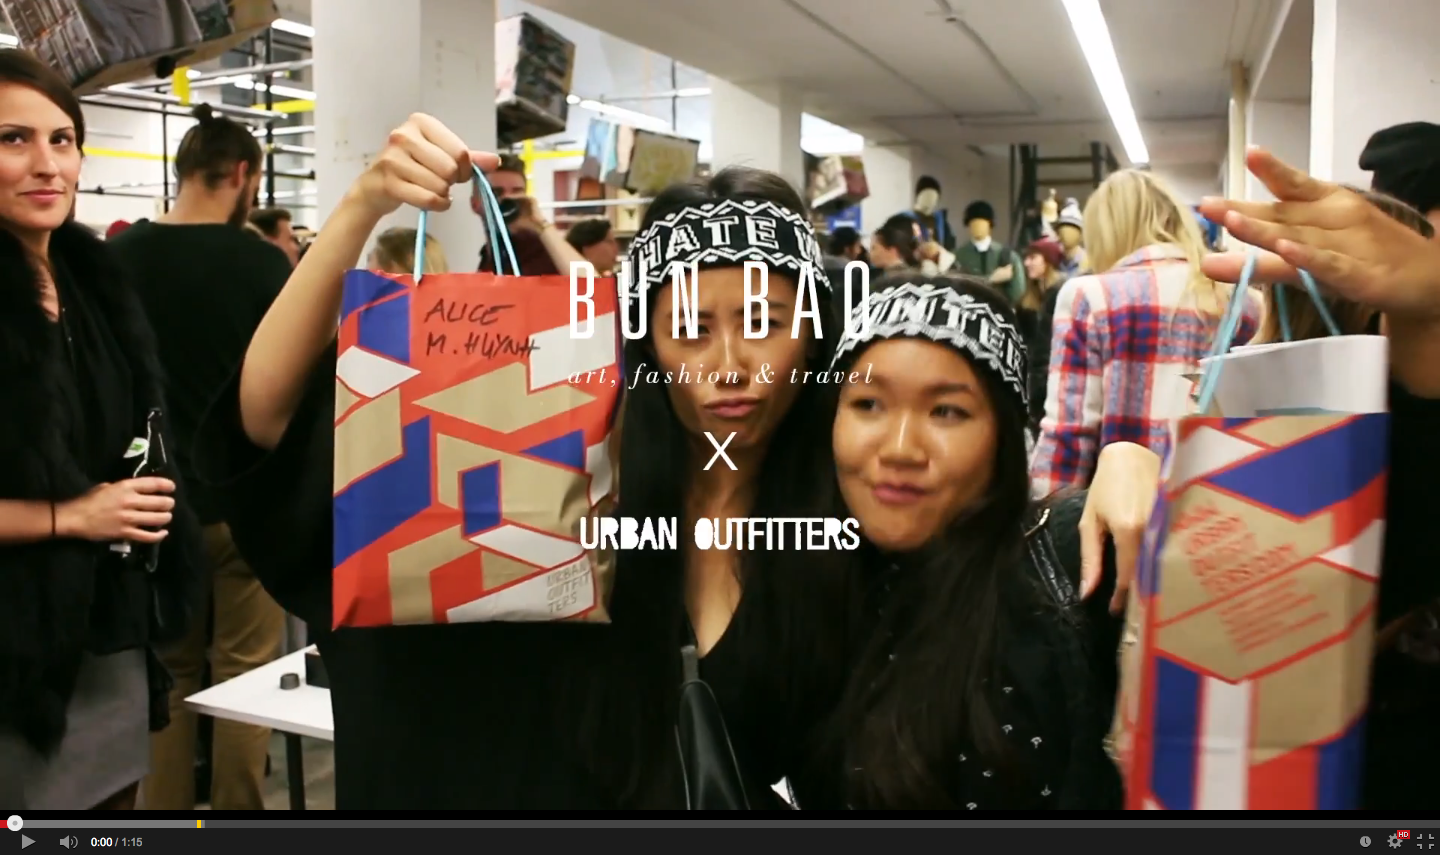 IHEARTALICE.DE – Fashion & Travel Blog: Urban Outfitters Store Opening in München/Deutschland – Pre-Opening Party auf BUN BAO